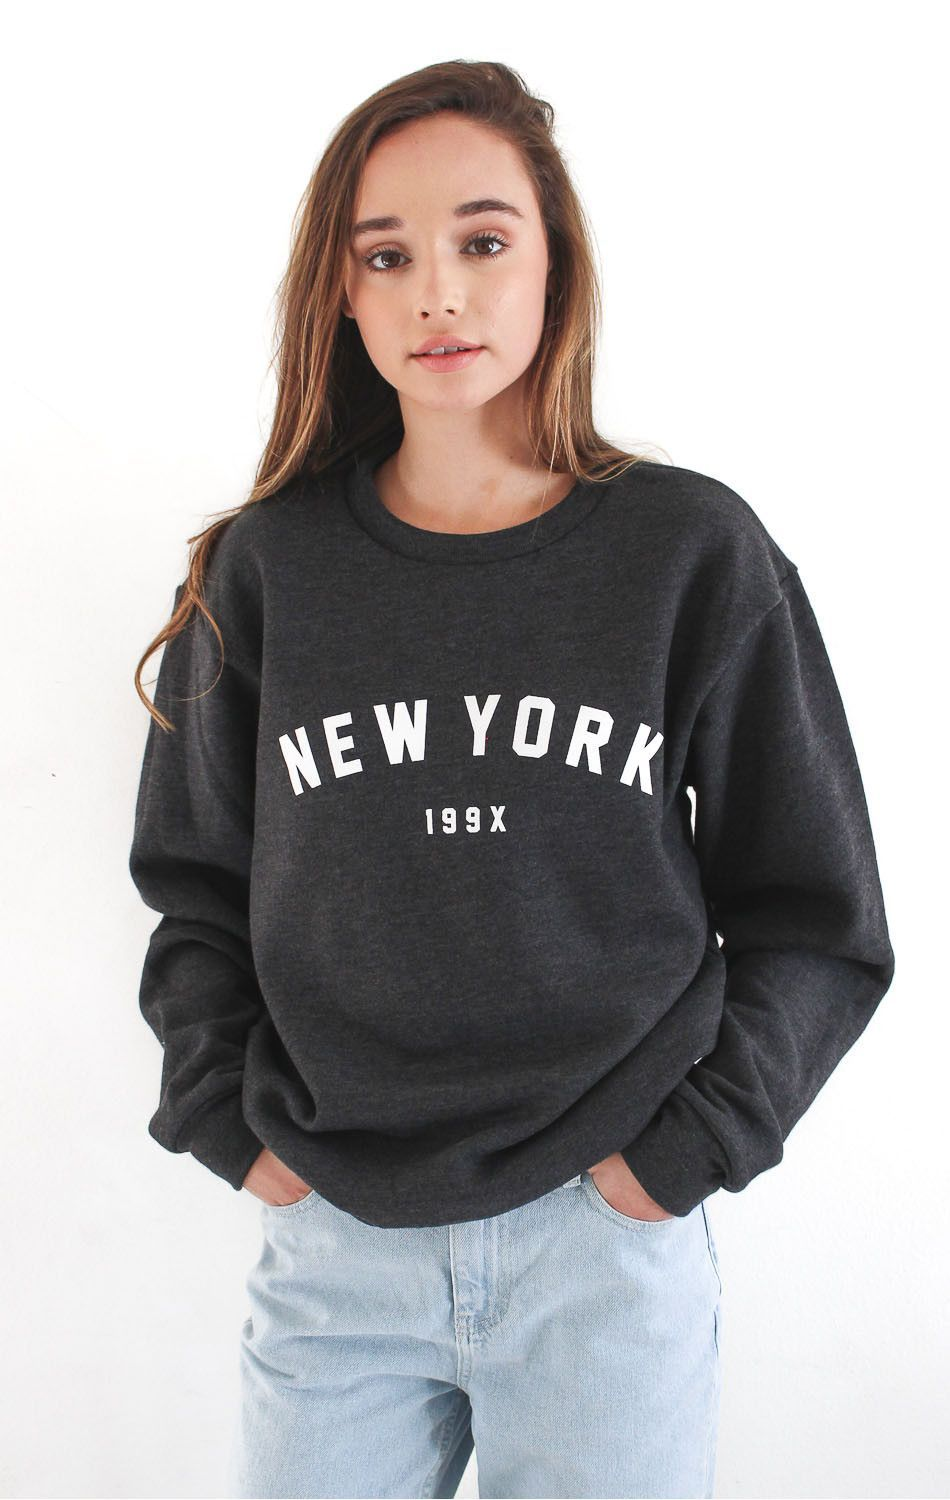 89dbd3e7 Description - Size Guide Details: 'New York 199x' soft oversized crew neck  fleece sweater by NYCT Clothing. Unisex fit. 50% Cotton, 50% Polyester.